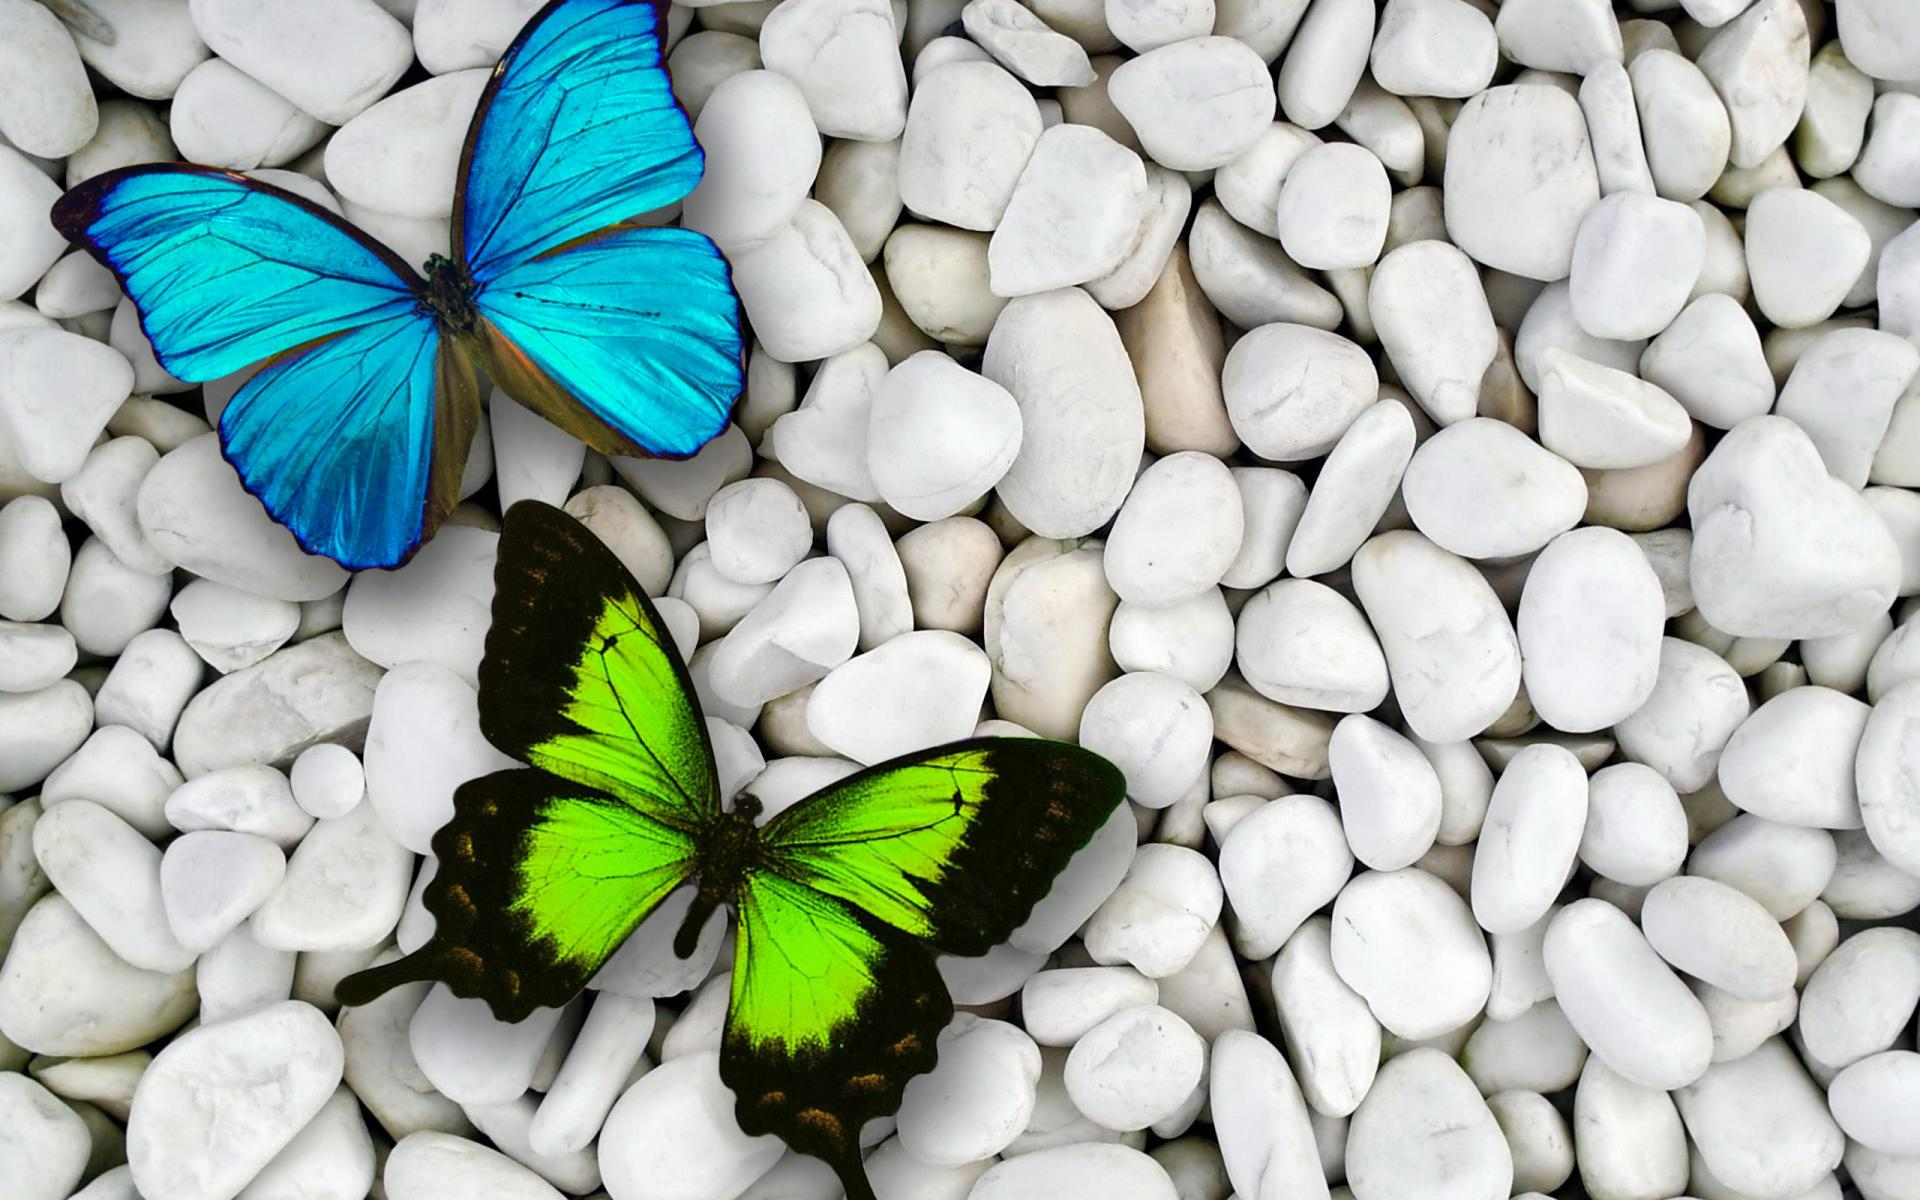 Butterflies On White Pebbles Full HD Wallpaper And Background Image